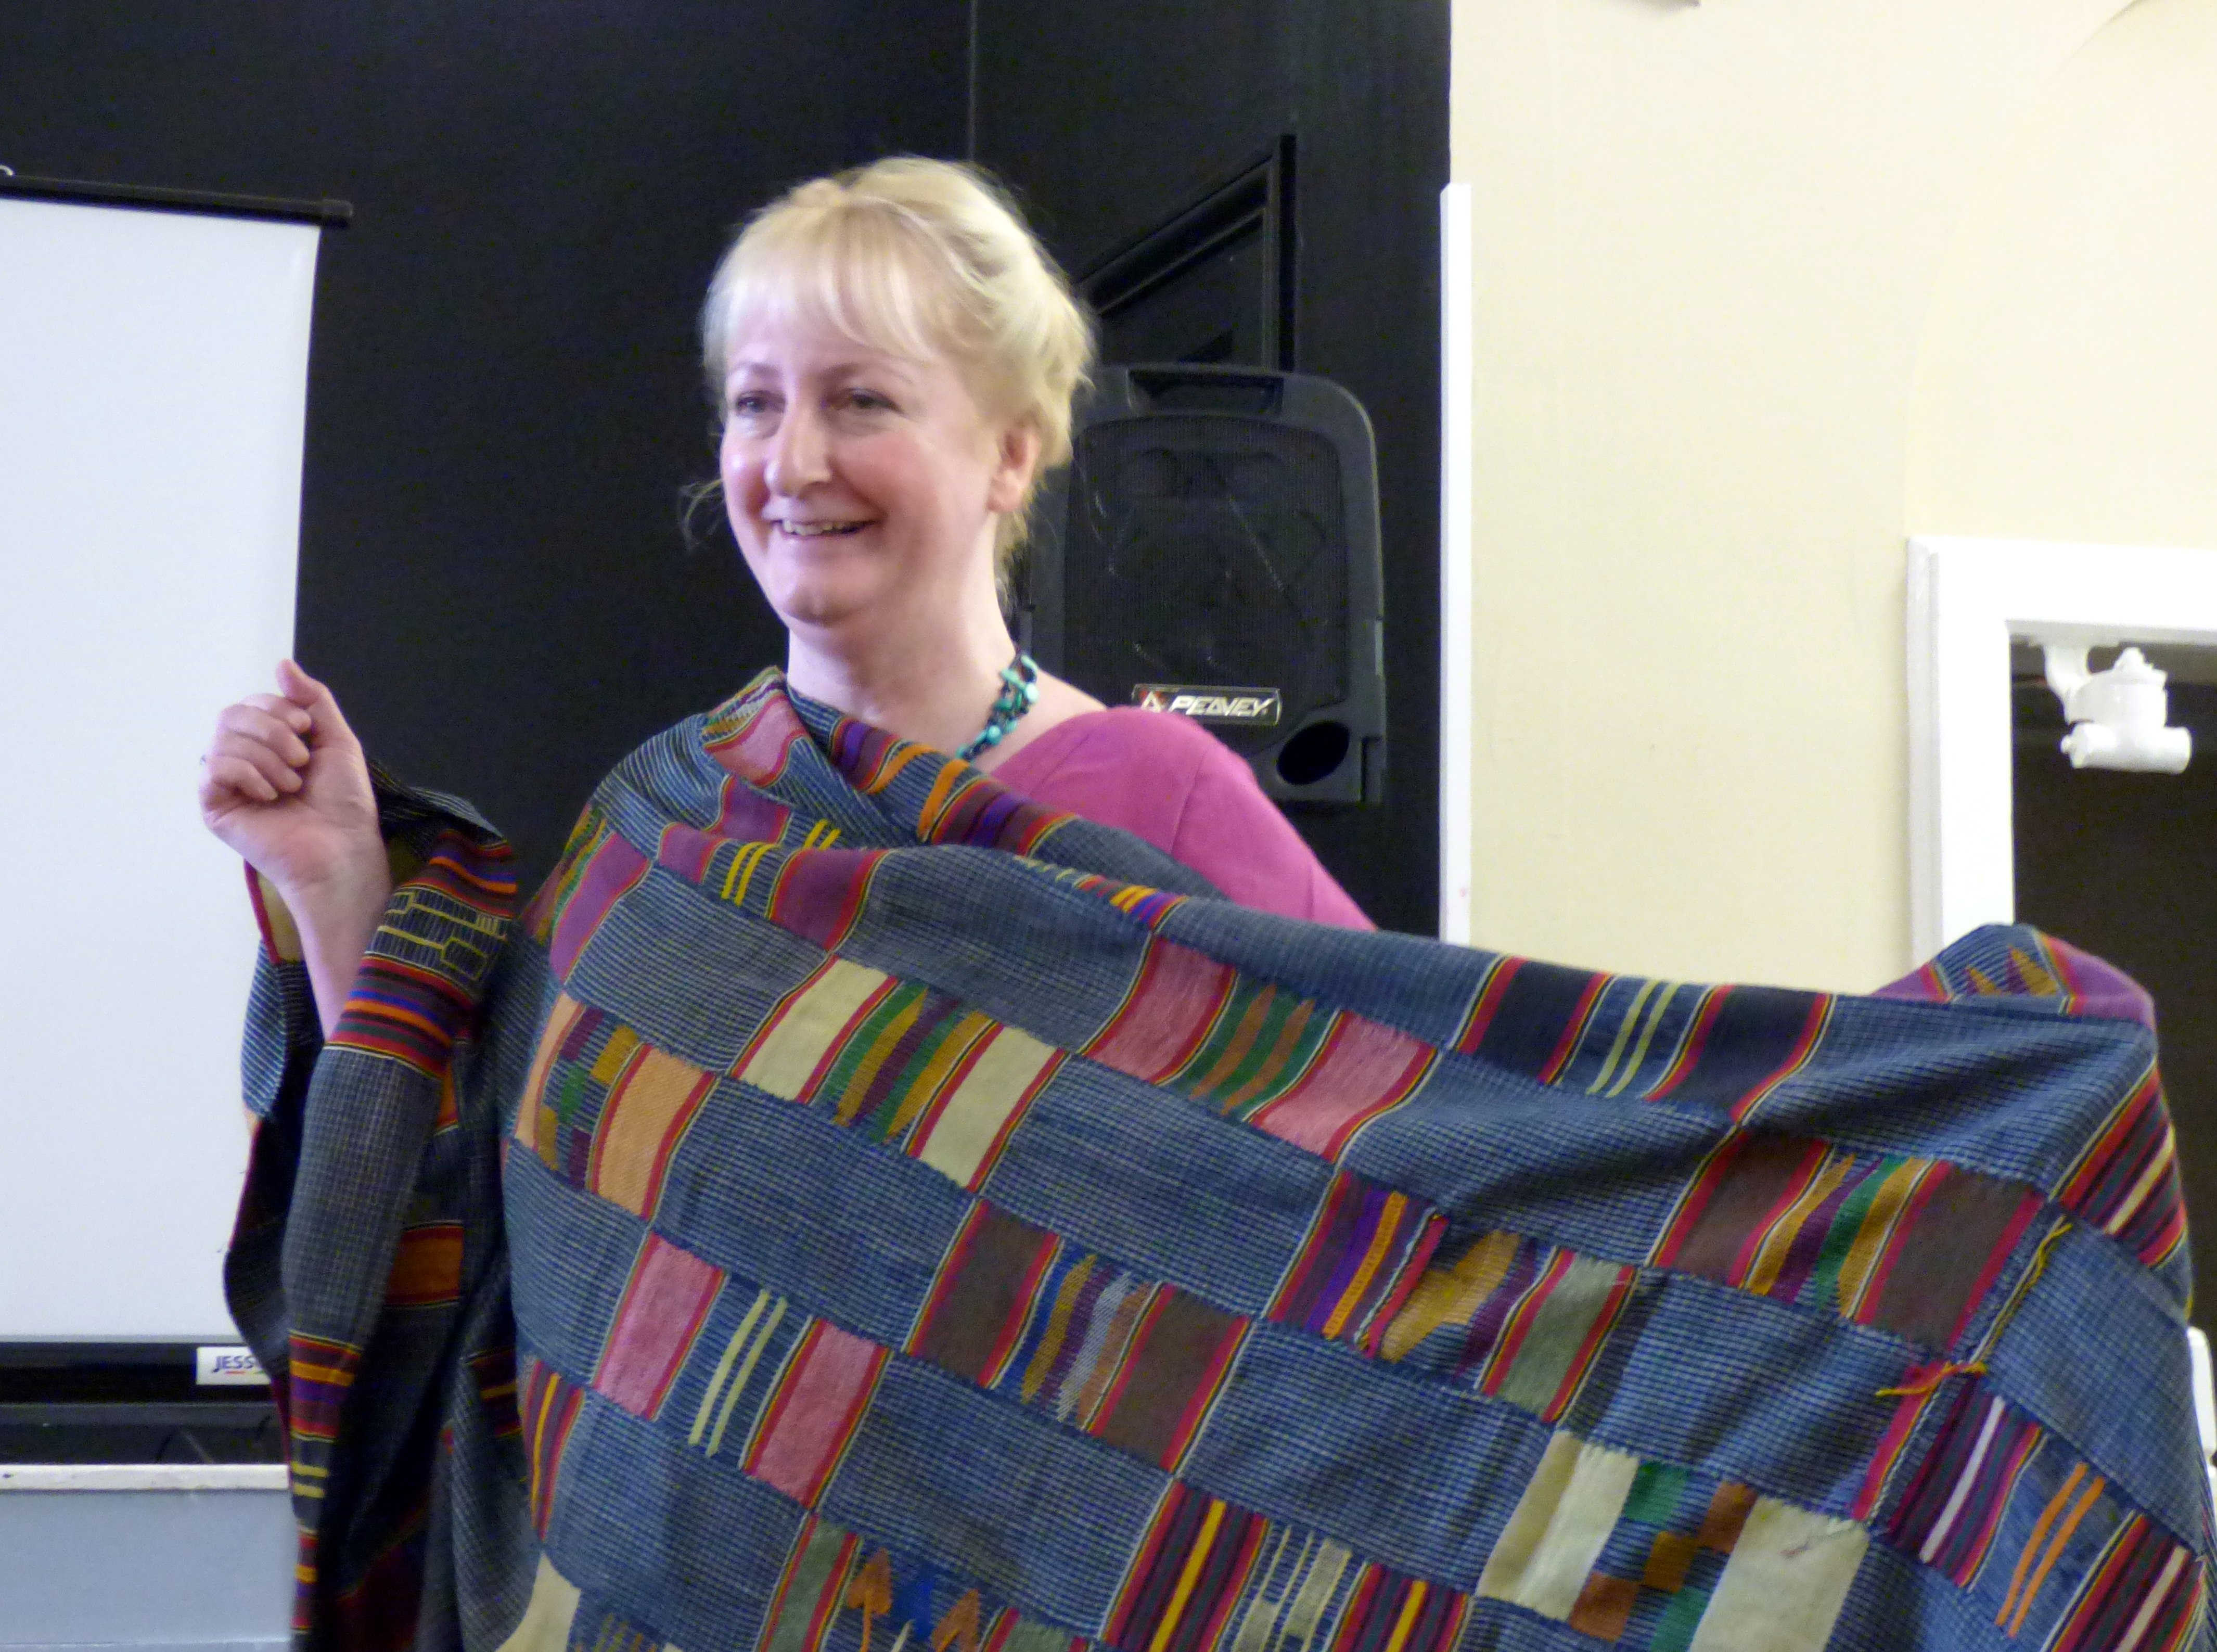 West African strip cloth shown by Magi Relph and modelled by Sarah Lowes